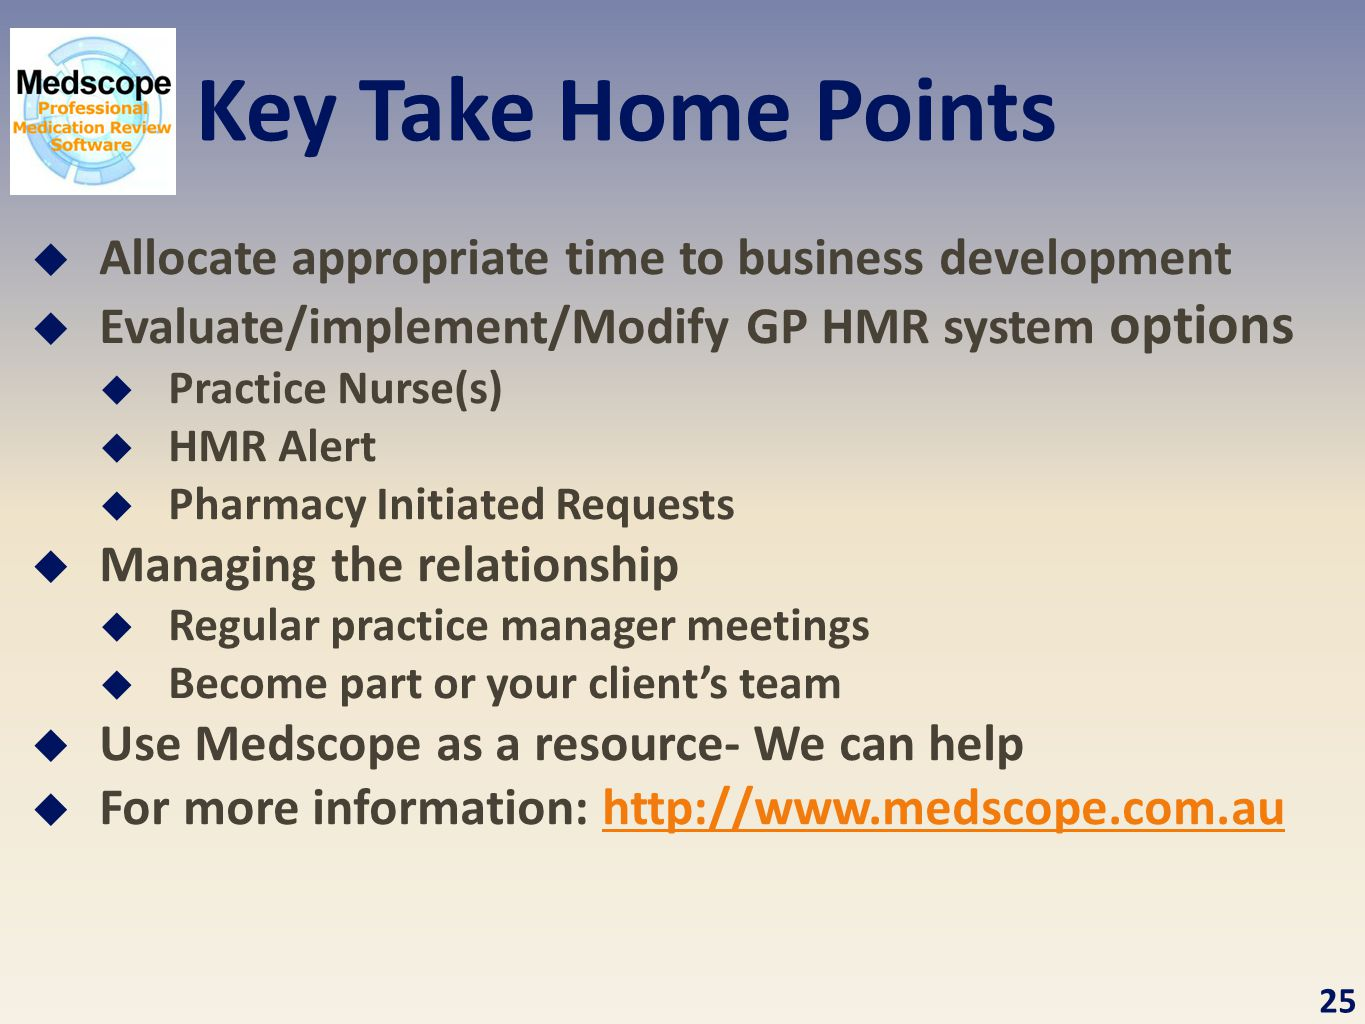 Key Take Home Points  Allocate appropriate time to business development  Evaluate/implement/Modify GP HMR system options  Practice Nurse(s)  HMR Alert  Pharmacy Initiated Requests  Managing the relationship  Regular practice manager meetings  Become part or your client's team  Use Medscope as a resource- We can help  For more information: http://www.medscope.com.auhttp://www.medscope.com.au 25